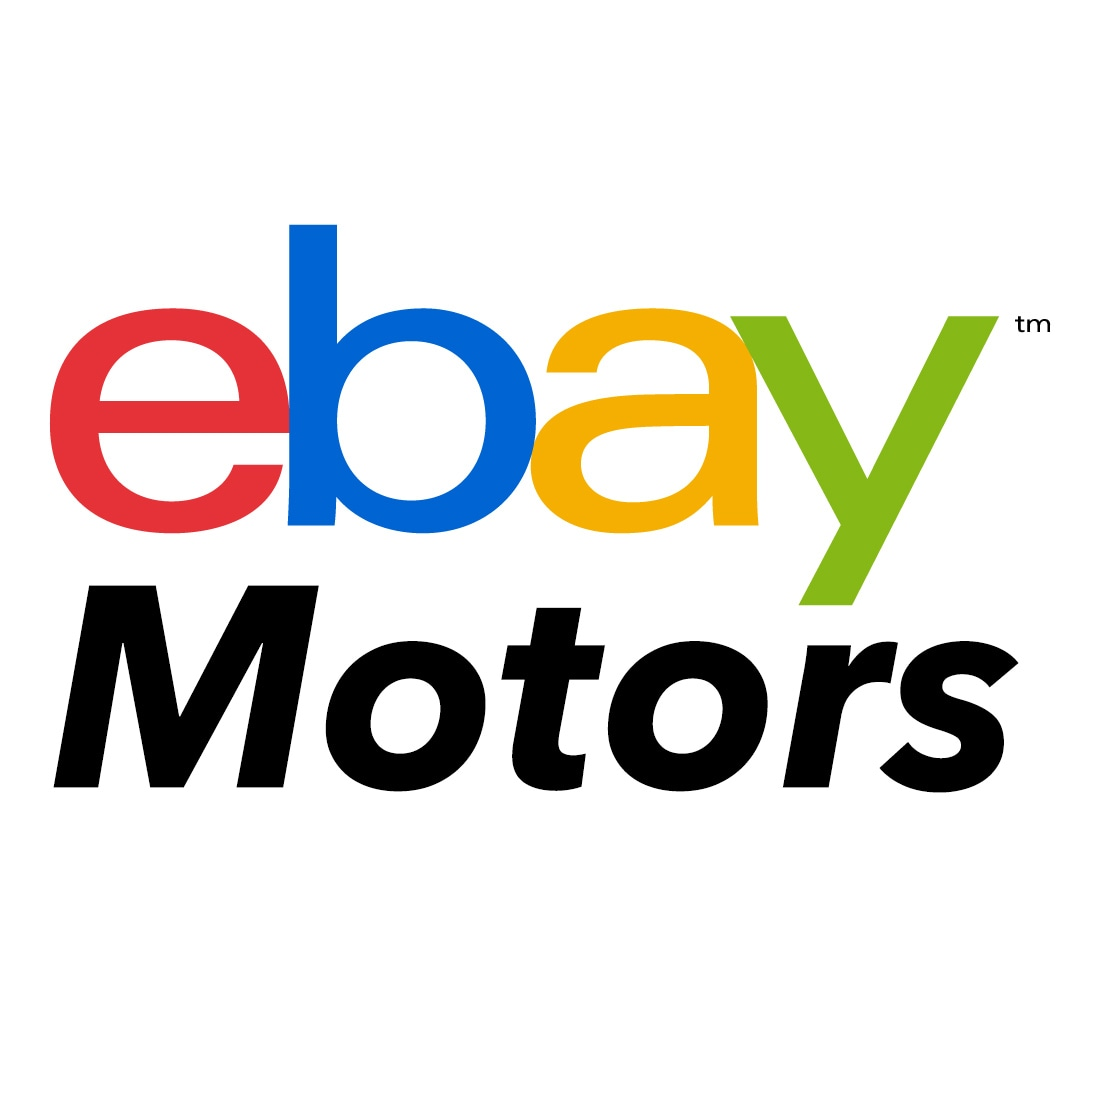 Shop motors.ebay.com